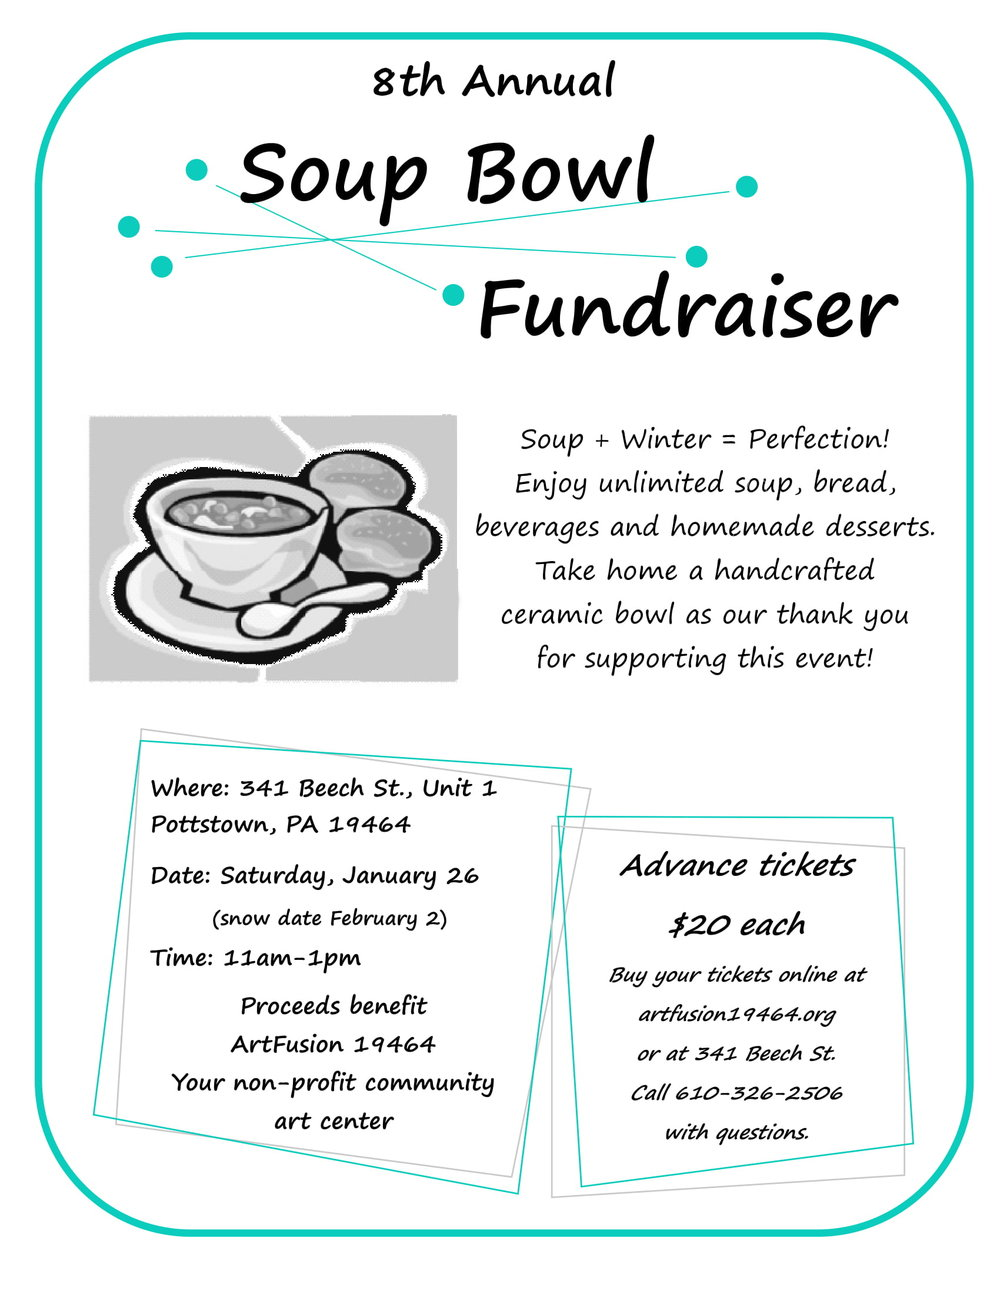 soup bowl flyer 19 (1)-1.jpg